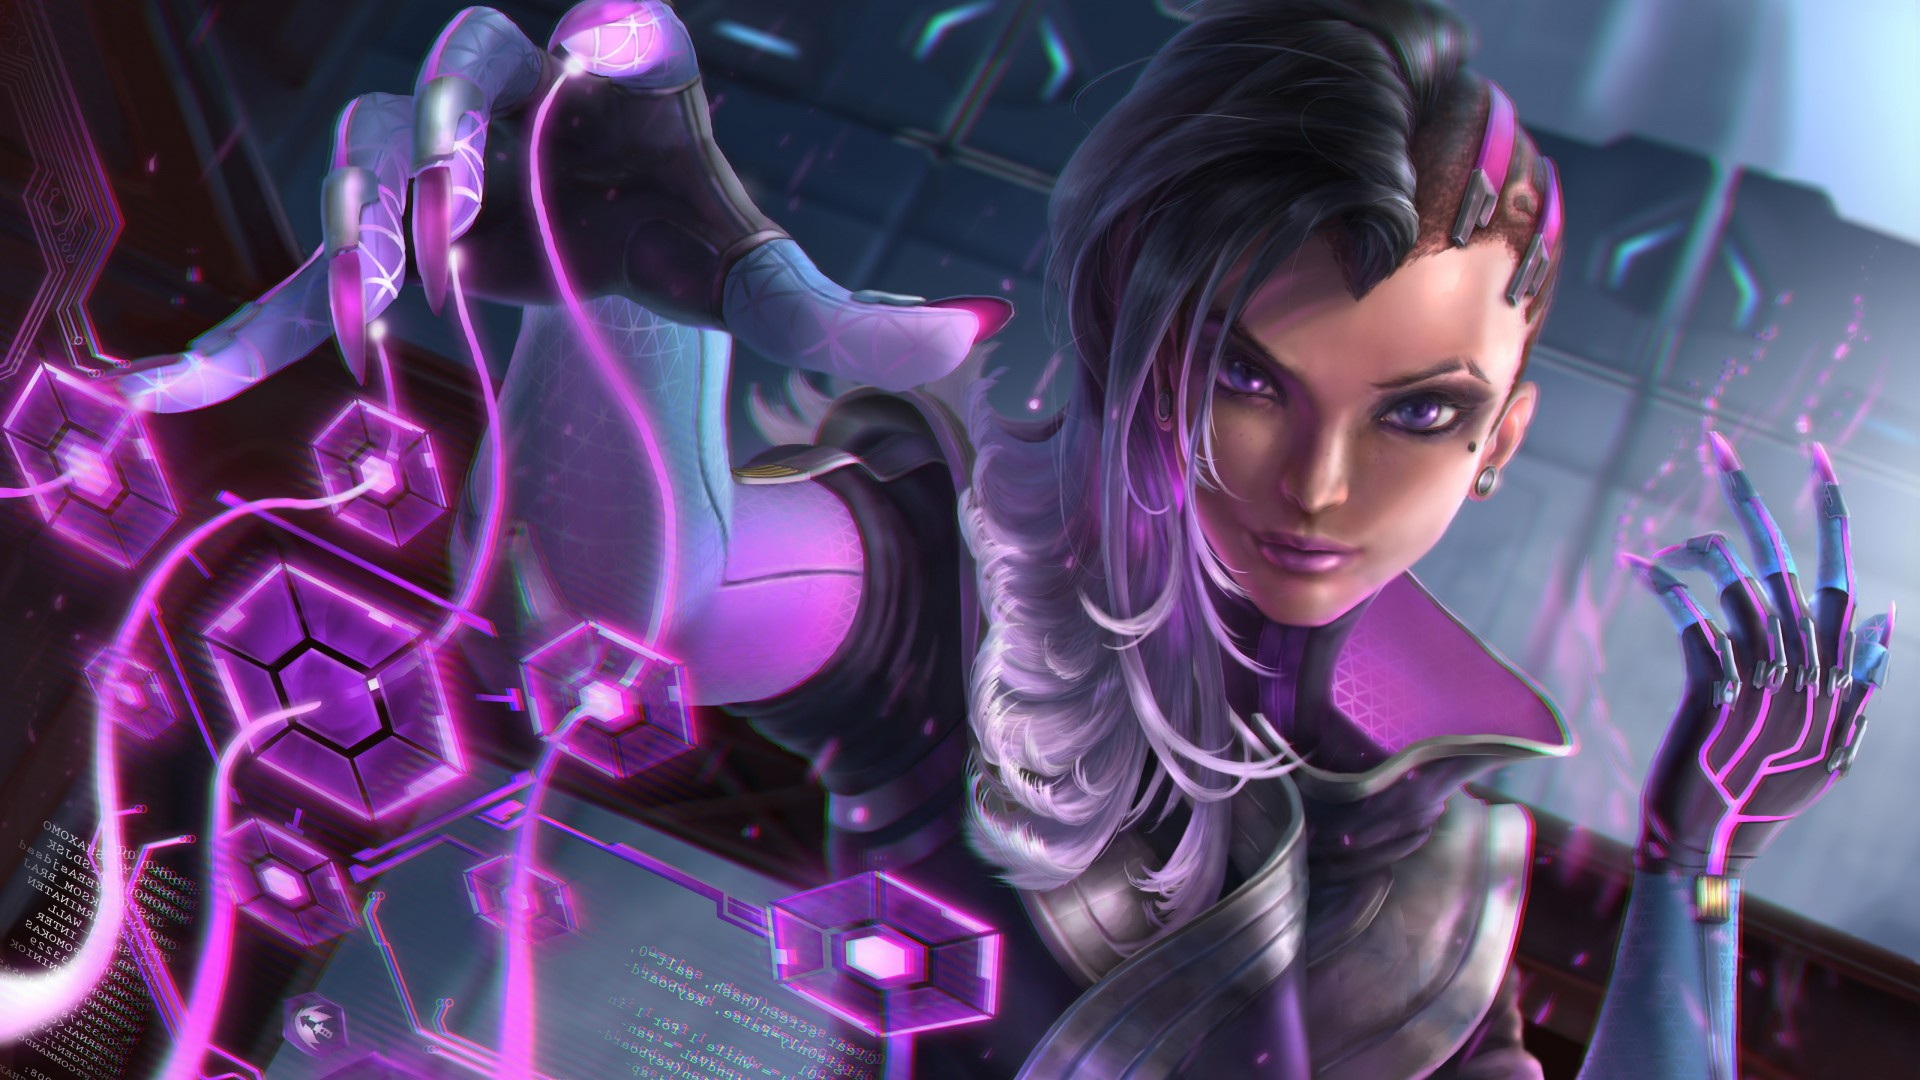 Fantasy Girl Wallpaper Full Hd Sombra Overwatch Artwork 5k Wallpapers Hd Wallpapers